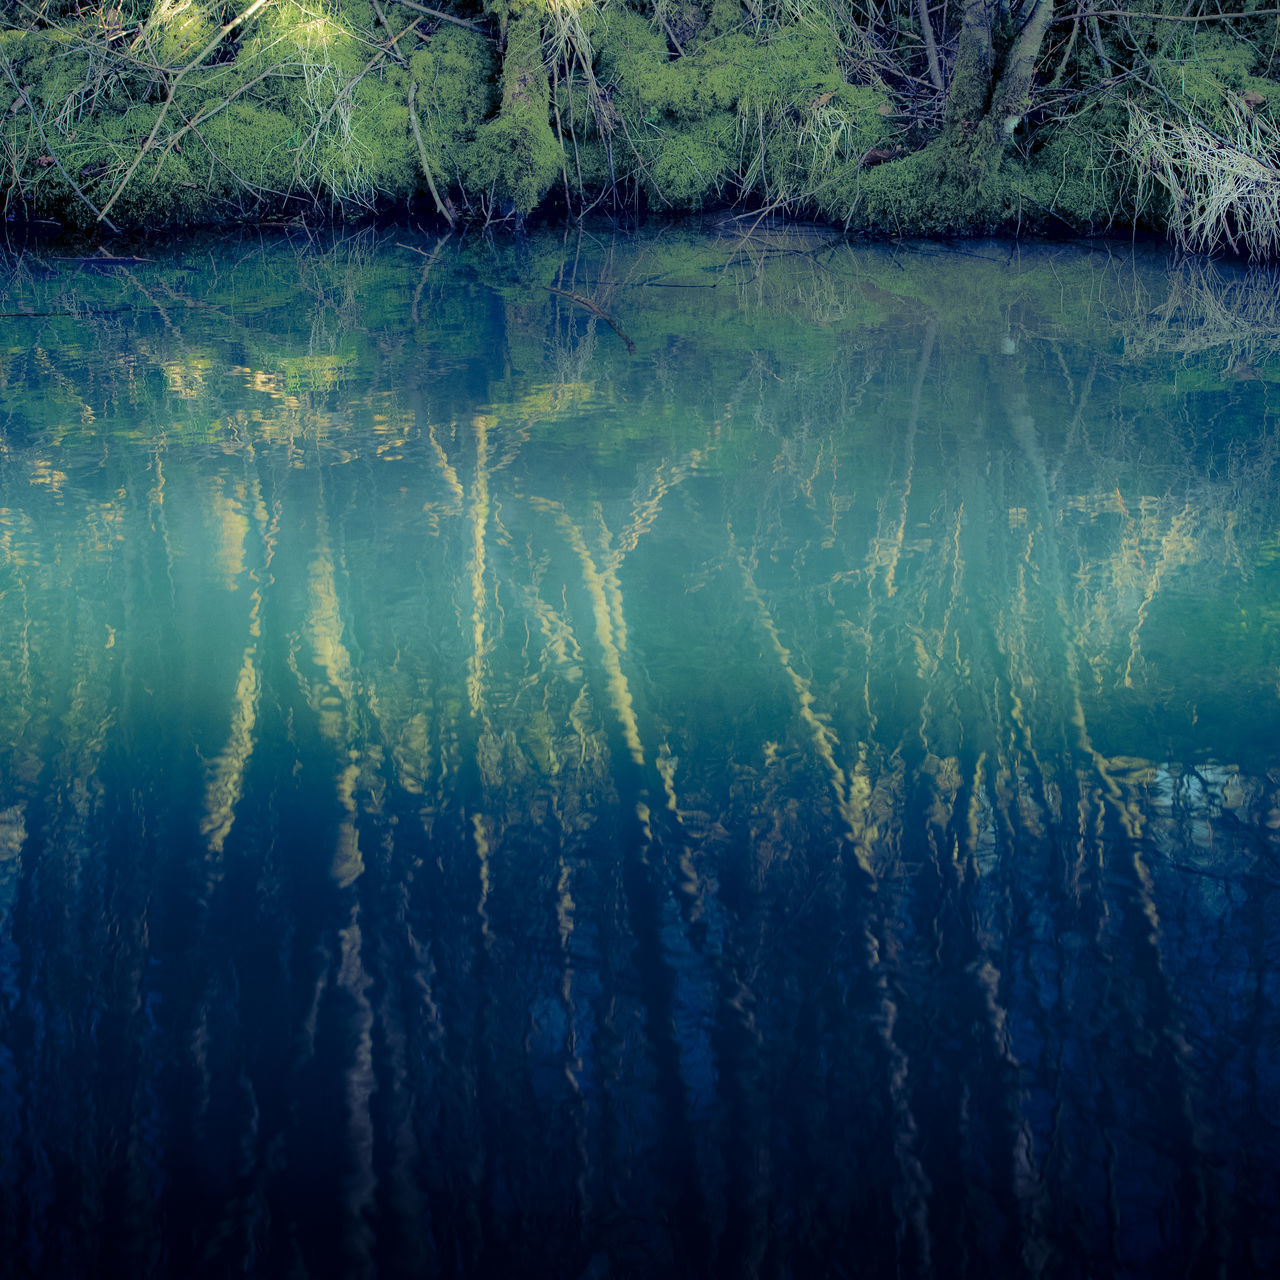 water, reflection, lake, beauty in nature, tranquility, nature, no people, day, waterfront, tranquil scene, scenics - nature, outdoors, idyllic, underwater, tree, full frame, surface